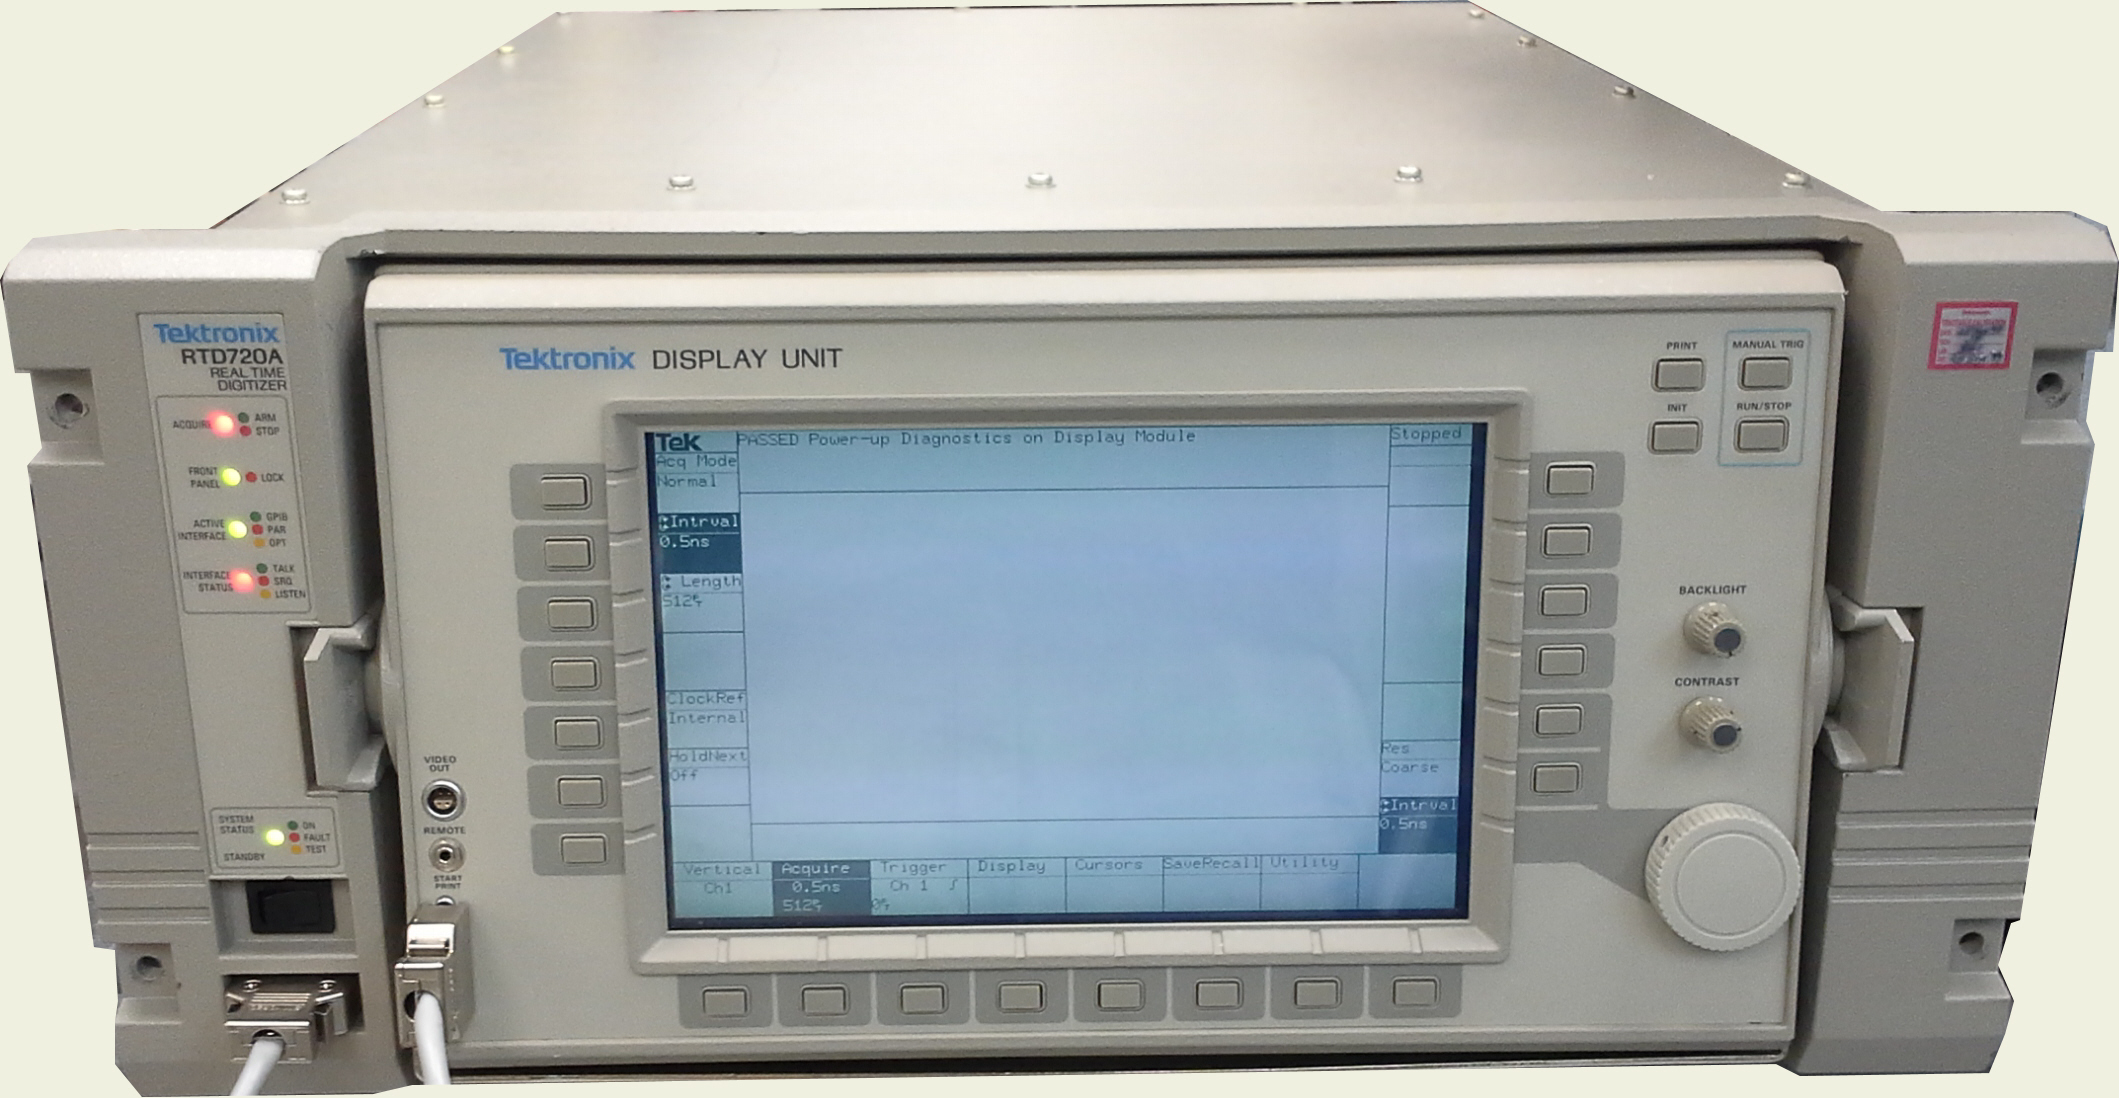 Tektronix RTD 720A for sale